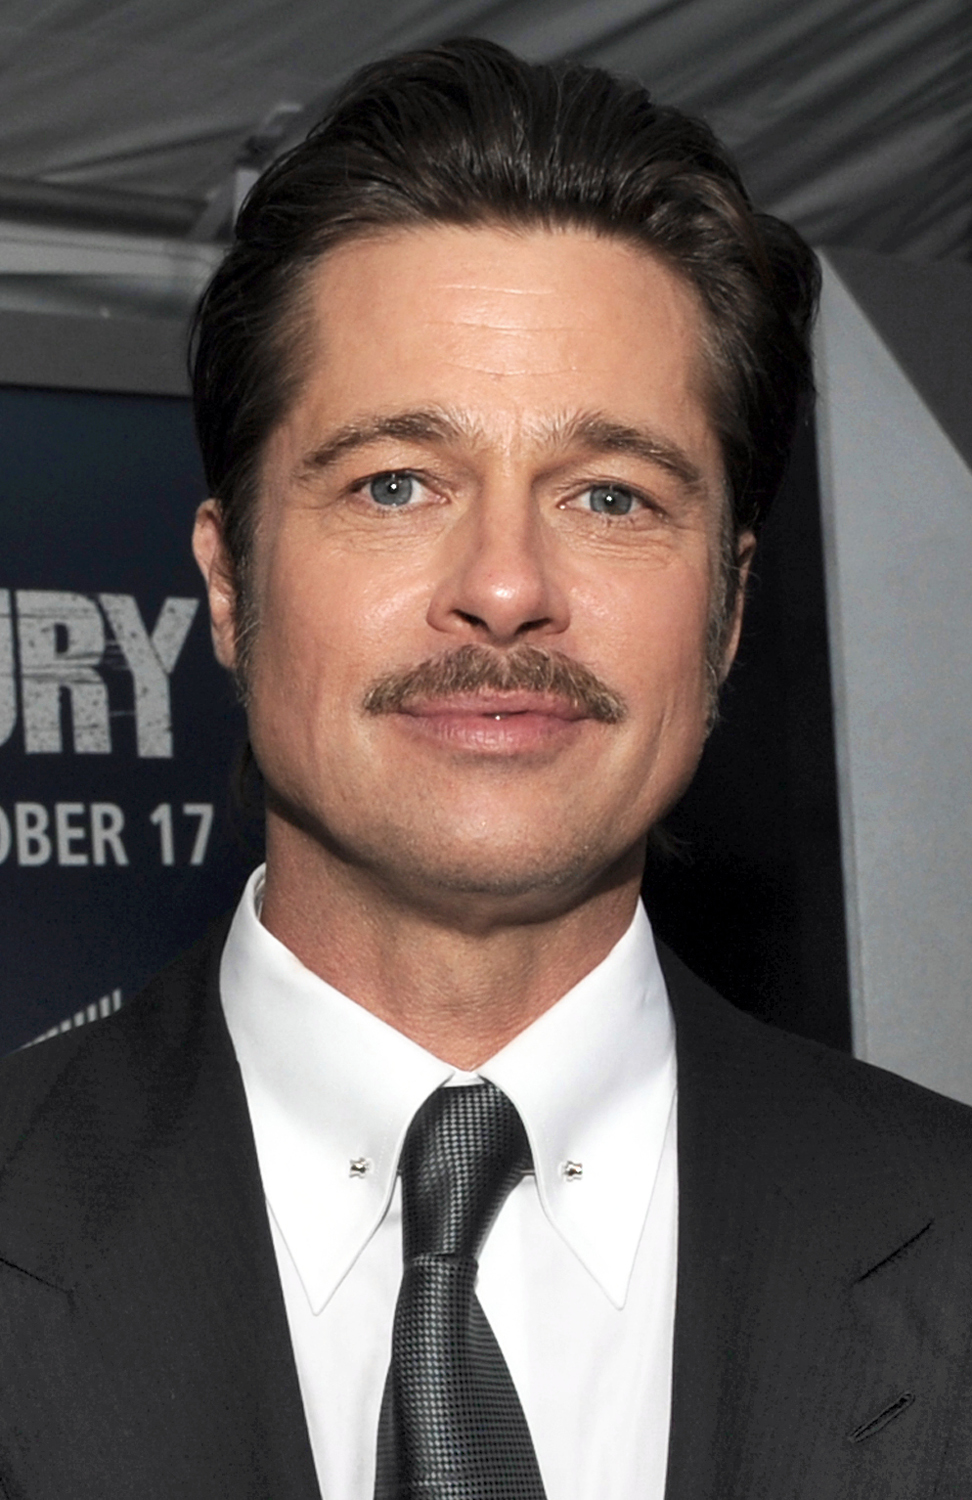 It is unlikely, but not impossible, that Brad Pitt will run for President.